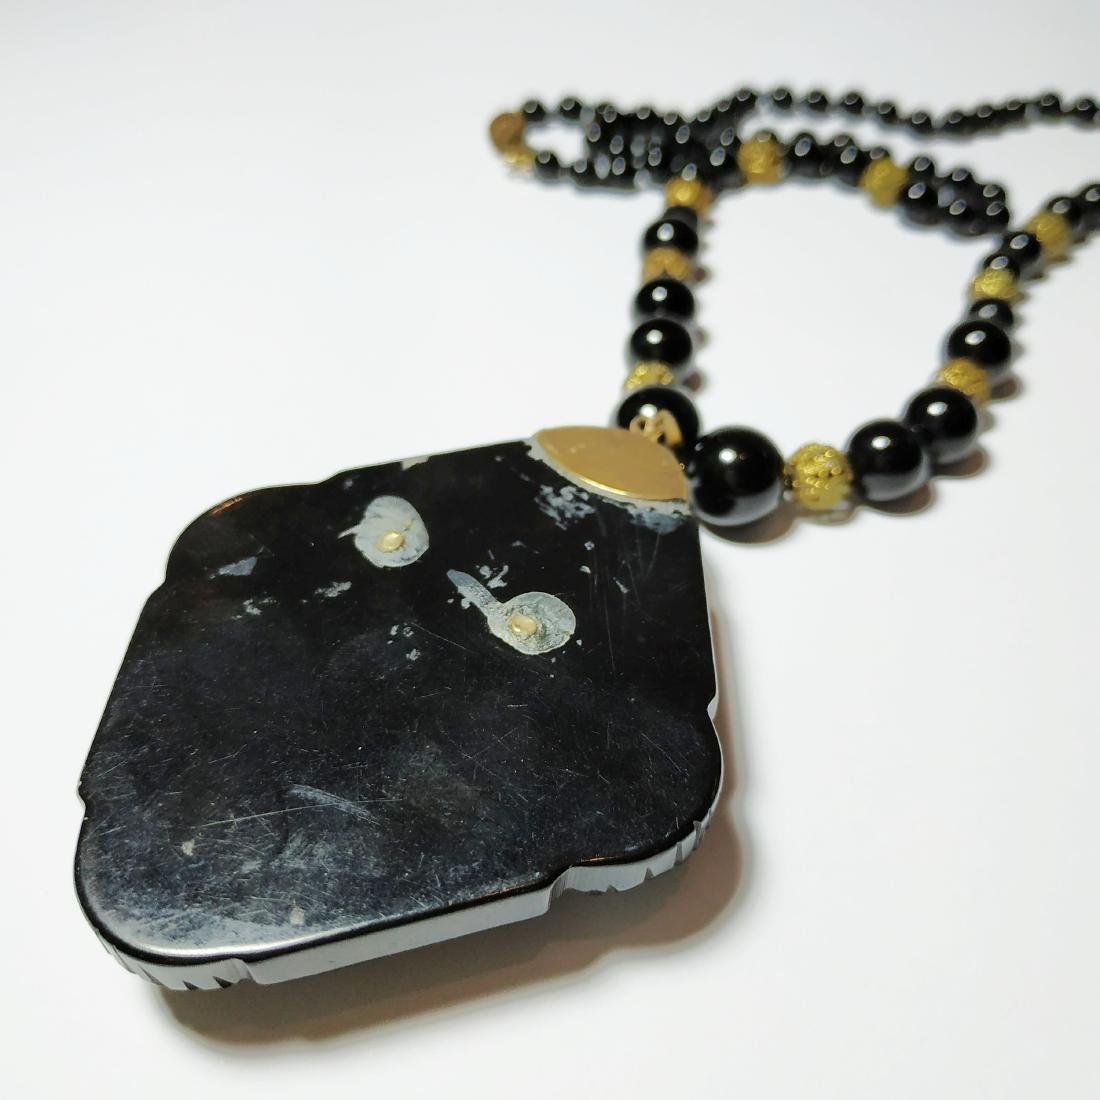 A ancient necklace and pendant - gold, Onyx, jet, bone - 4